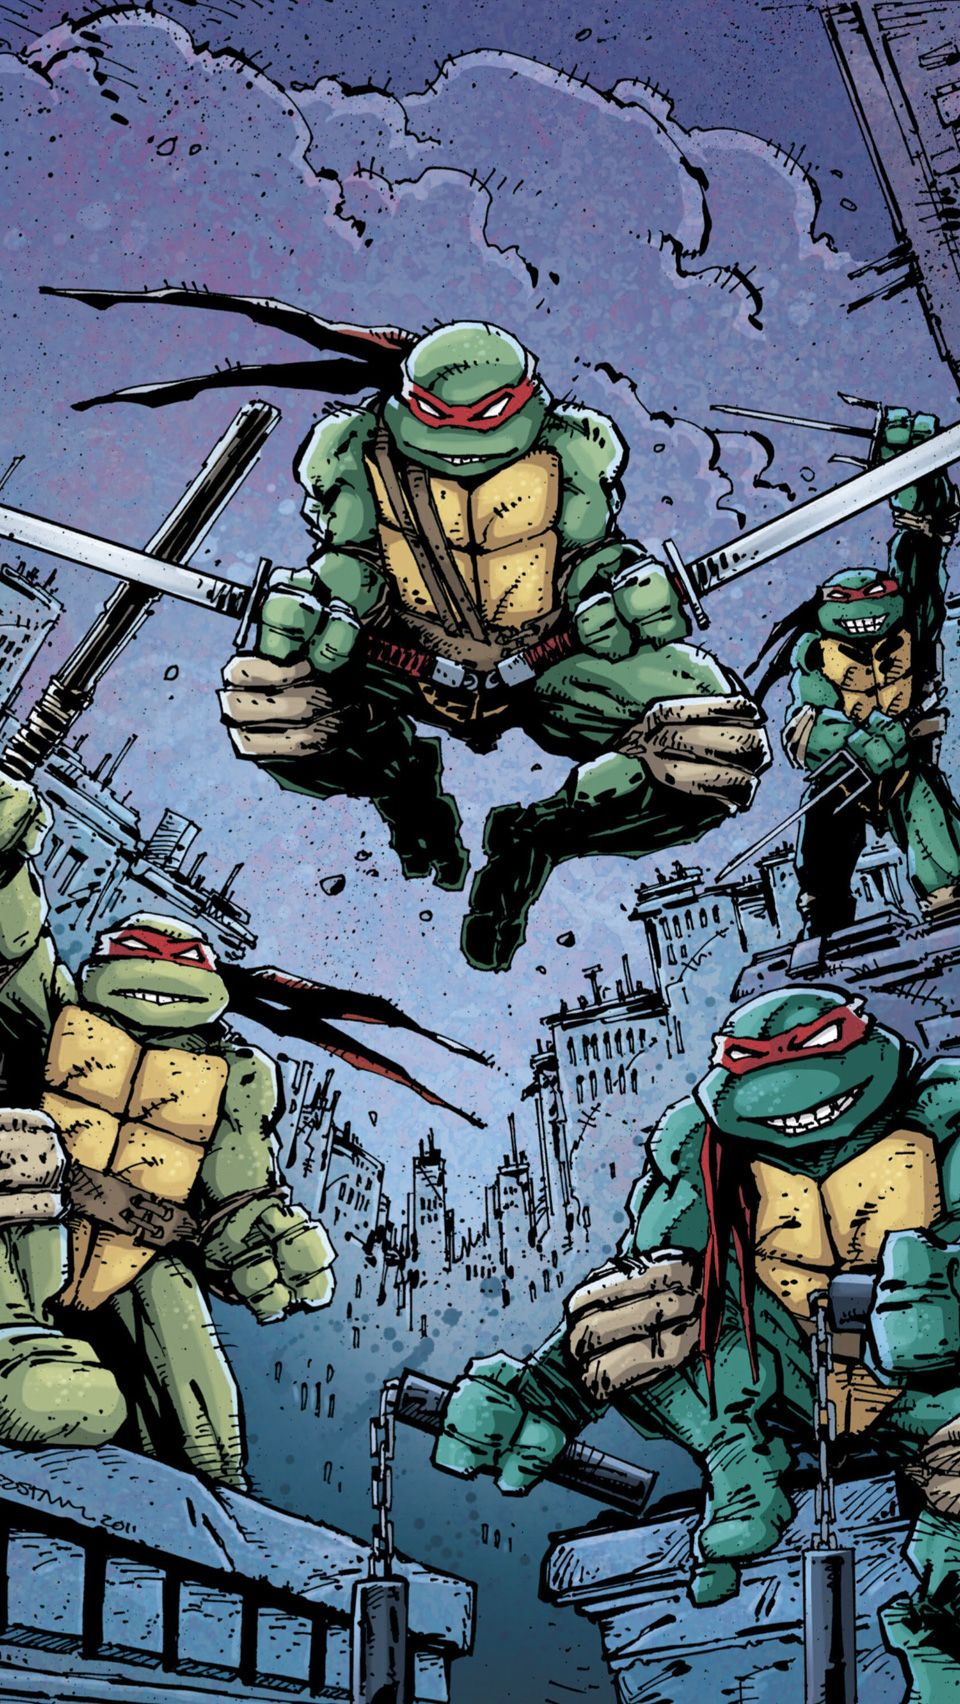 Tmnt Wallpaper Tmnt, Ninja turtles art, Teenage mutant